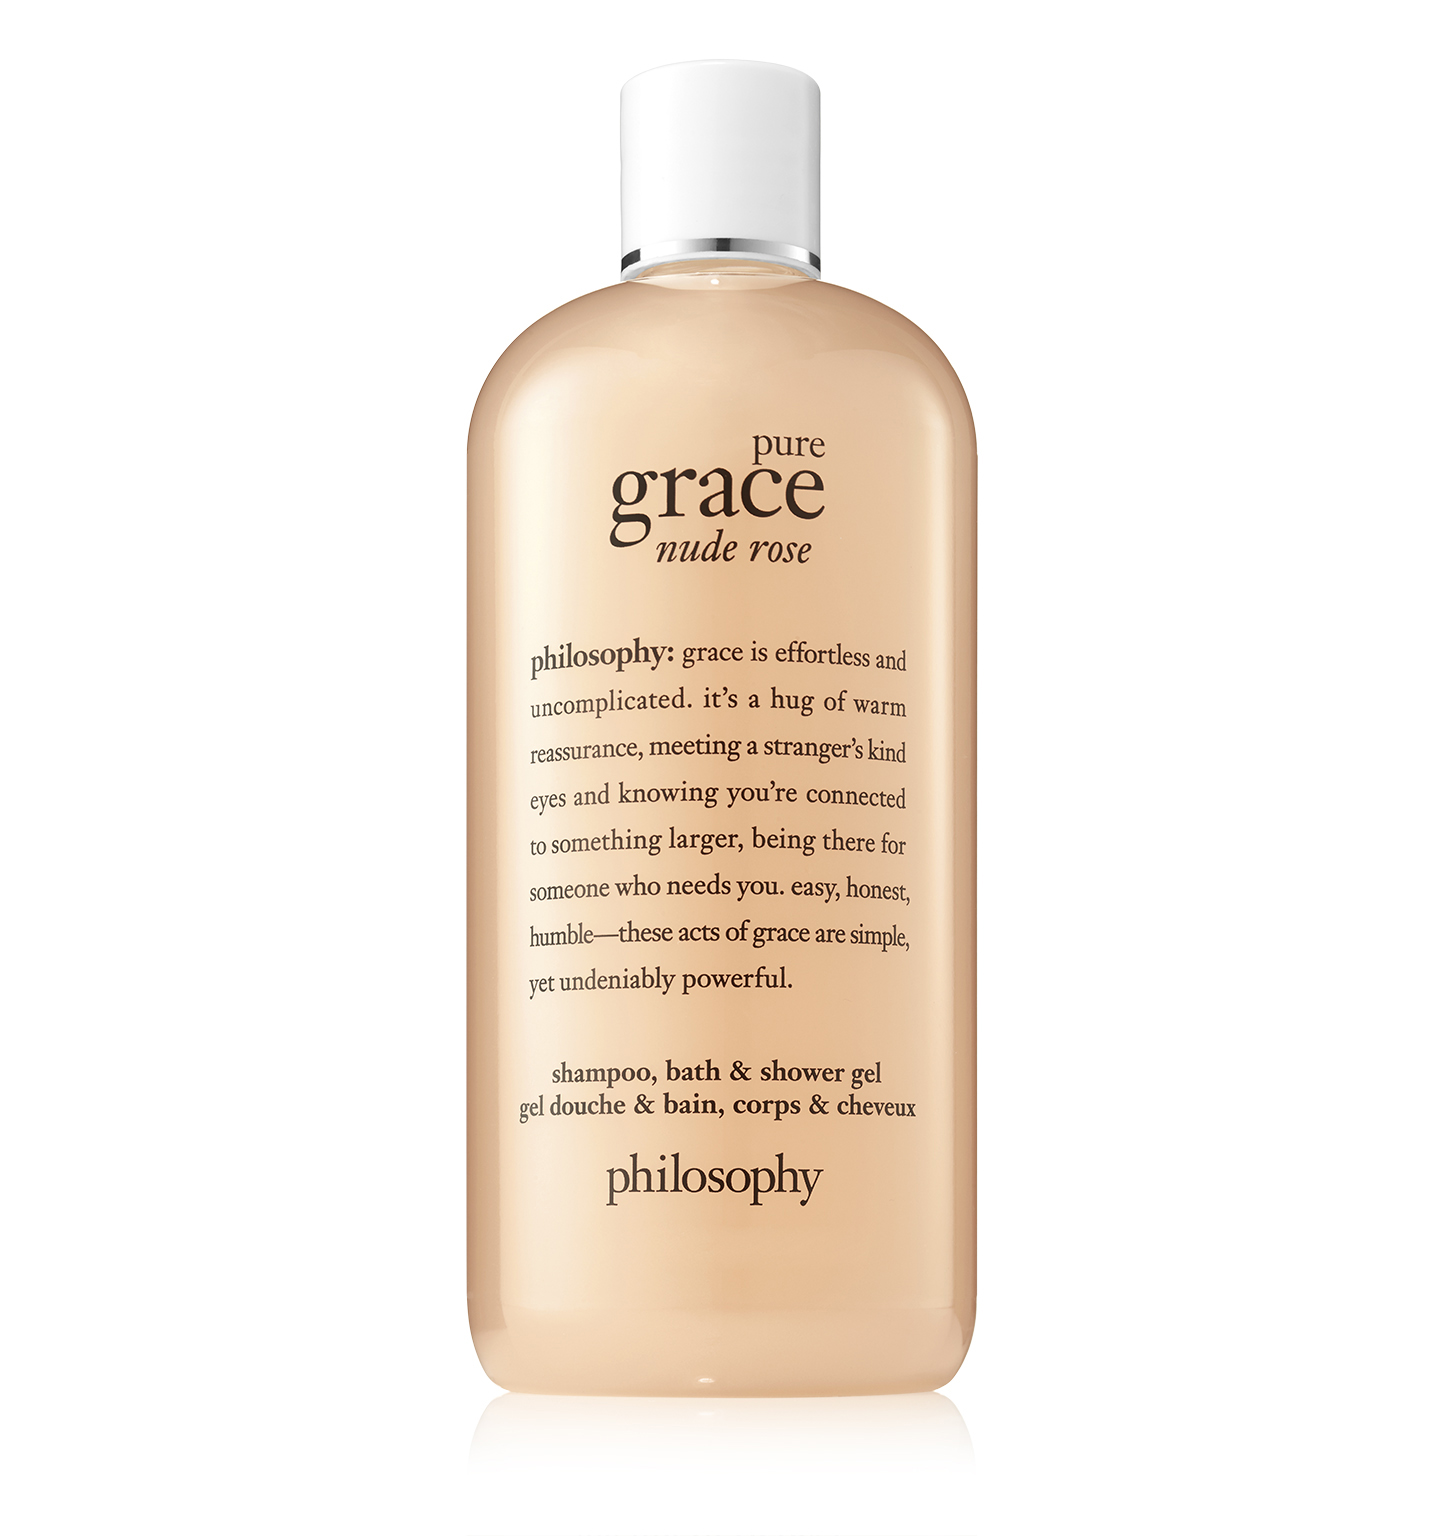 philosophy, pure grace nude rose shower gel